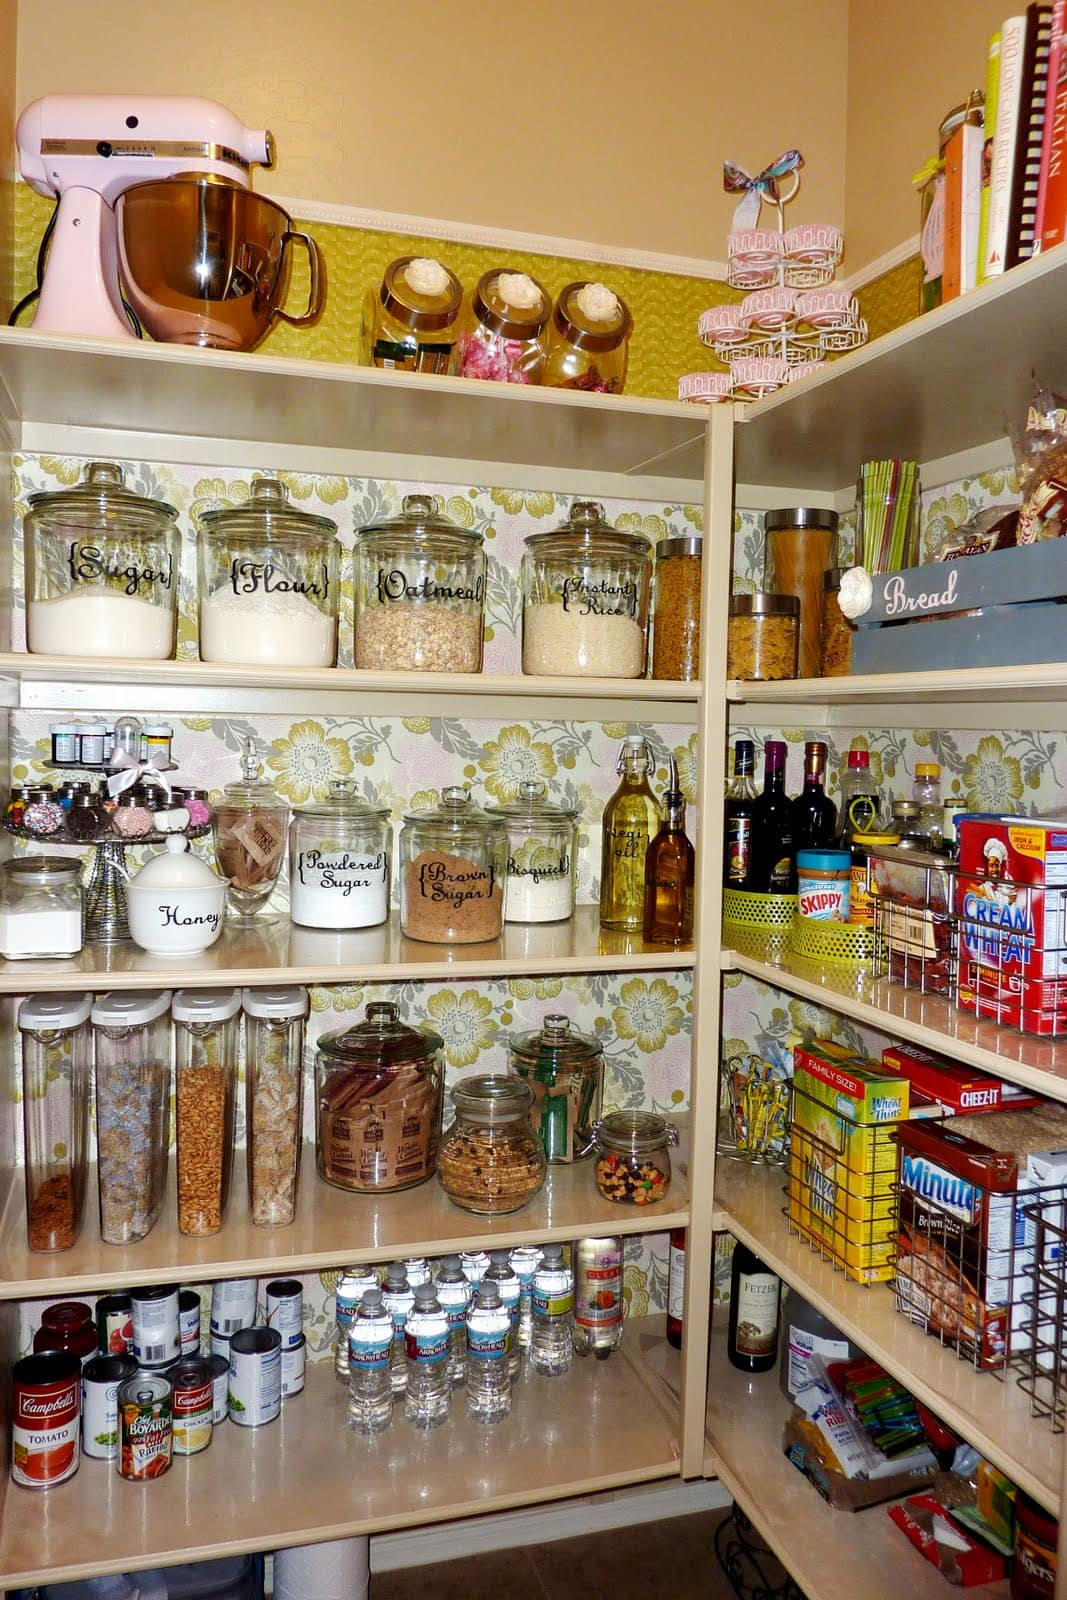 Get Inspired: 10 Amazing Pantry Makeovers